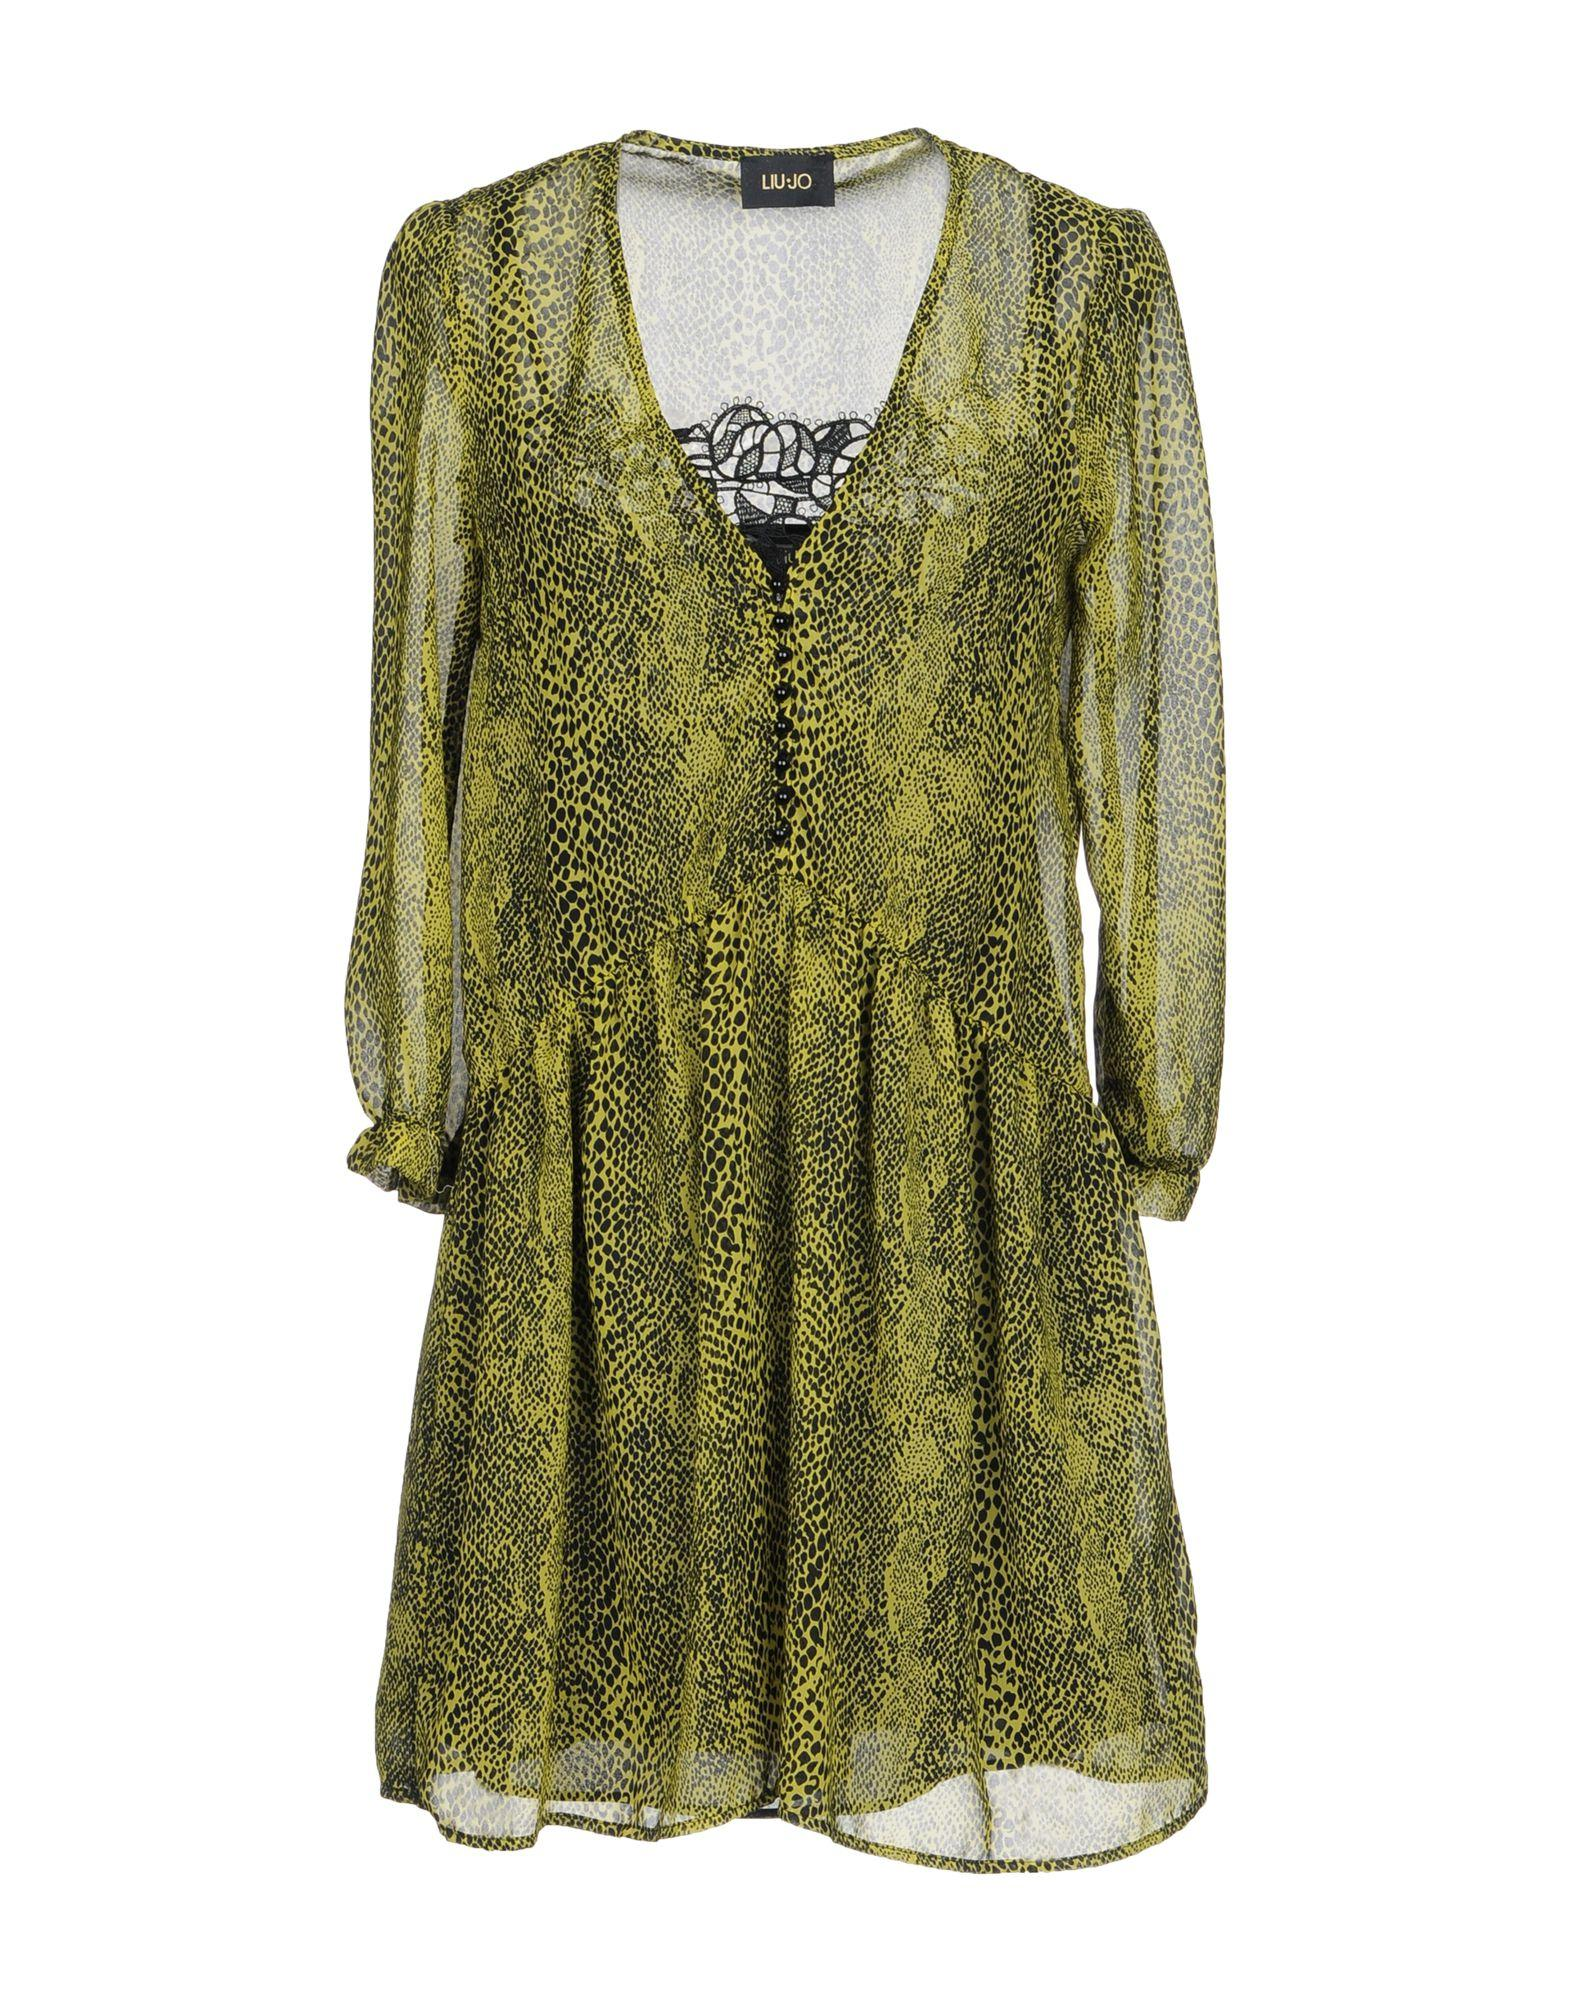 Liu •jo Shirt Dress In Acid Green